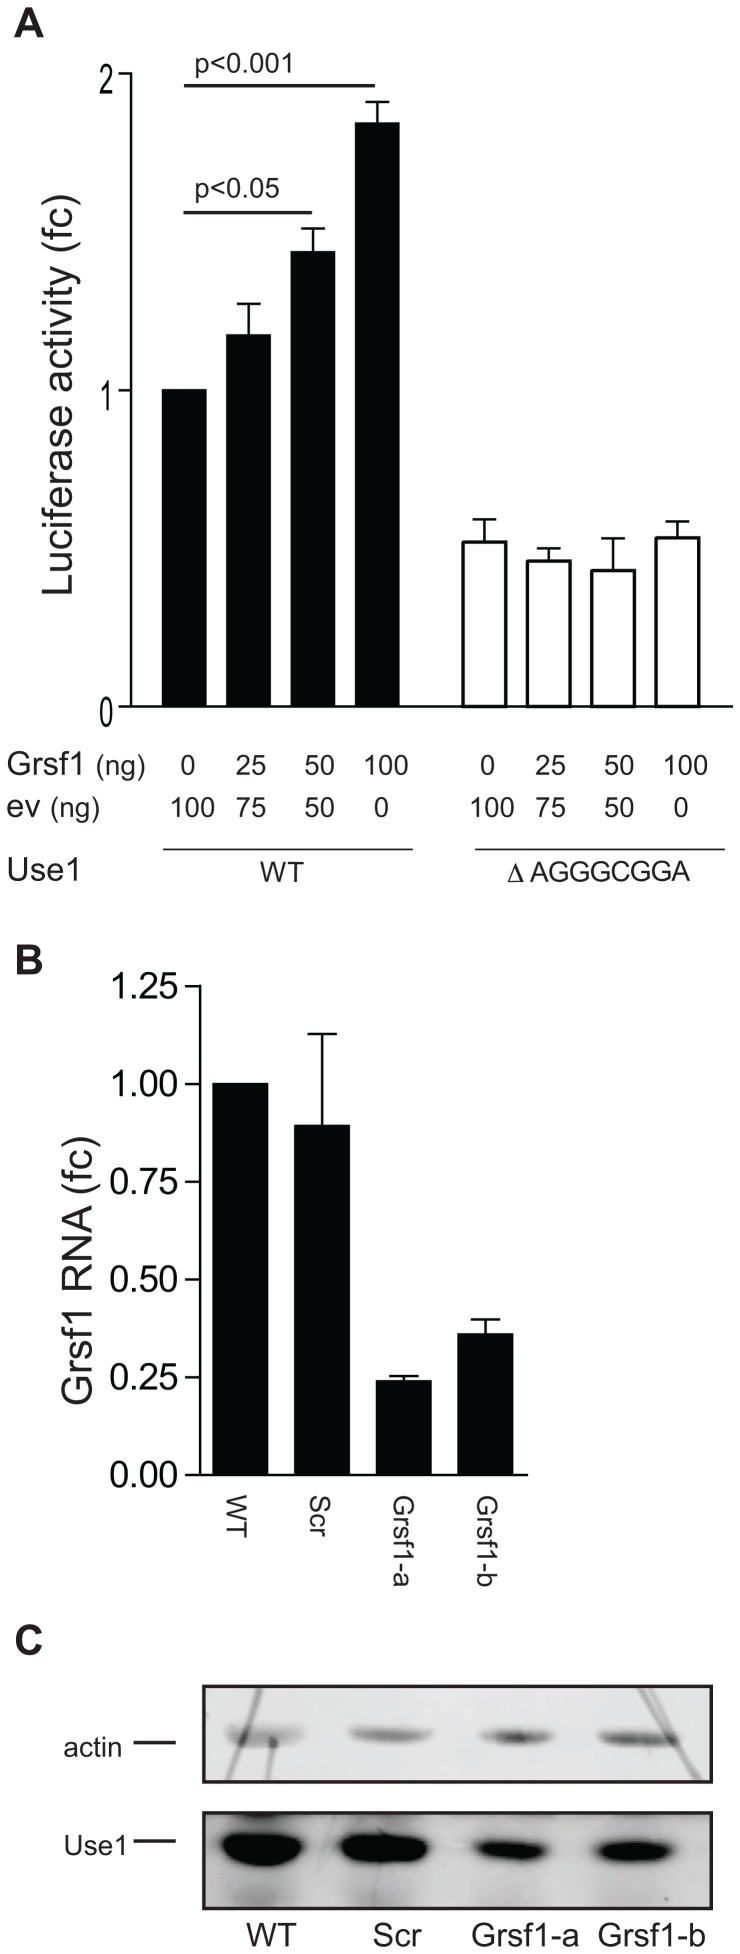 Grsf1 controls translation of Use1. ( A ) Luciferase reporter constructs harboring the Use1 wt 5′UTR (WT, black bars), or a 5′UTR lacking the AGGGCGGA repeat (open bars), were transfected in NIH3T3 cells together with increasing amounts of a Grsf1 expression plasmid. The total amount of transfected DNA was kept constant by adding additional backbone plasmid DNA (EV, pcDNA3.1). Luciferase activity is corrected for mRNA expression and given as fold-change (fc) compared to WT reporter in absence of Grsf1 overexpression. Error bars indicate standard deviation of 3 experiments. ( B ) I/11cells were transduced with the lentiviral constructs containing two different shRNAs matching Grsf1 (indicated a and b) or control shRNA (Scr). The efficiency of Grsf1 transcript knock down was determined using RT-PCR. The expression of Grsf1 in parental cells is set to 1. Error bars indicate standard deviation of 3 experiments. ( C ) The protein lysates from transduced I/11 cells (representative experiment from B) were tested in WB with anti-actin (42 kDa) and anti-Use1 (30.5 kDa) antibody.